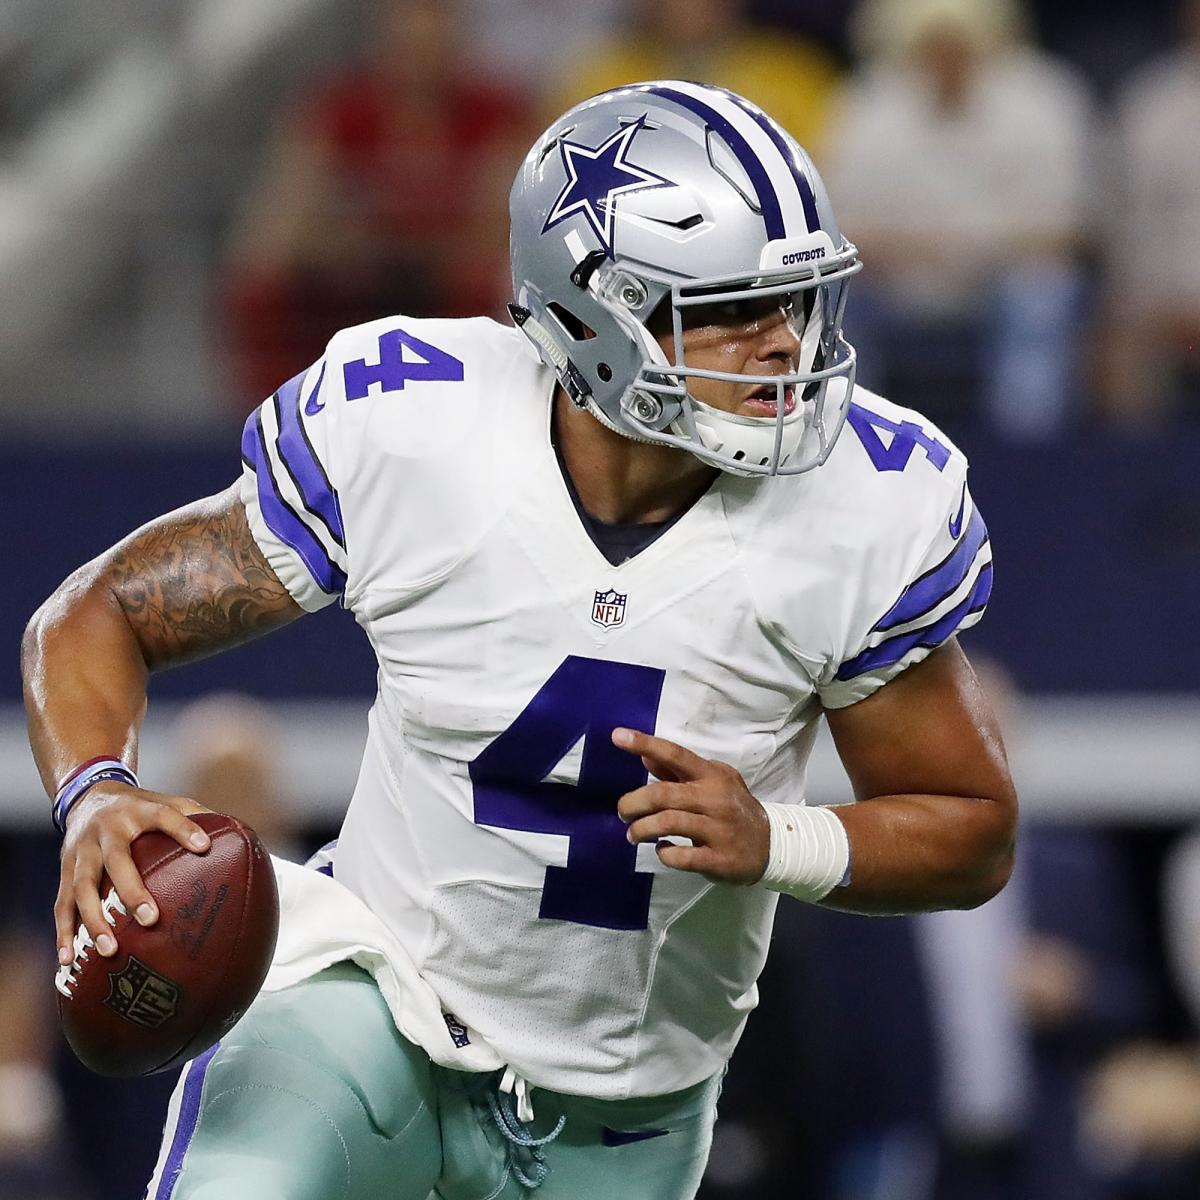 Eagles Vs. Cowboys: Score And Twitter Reaction For Sunday